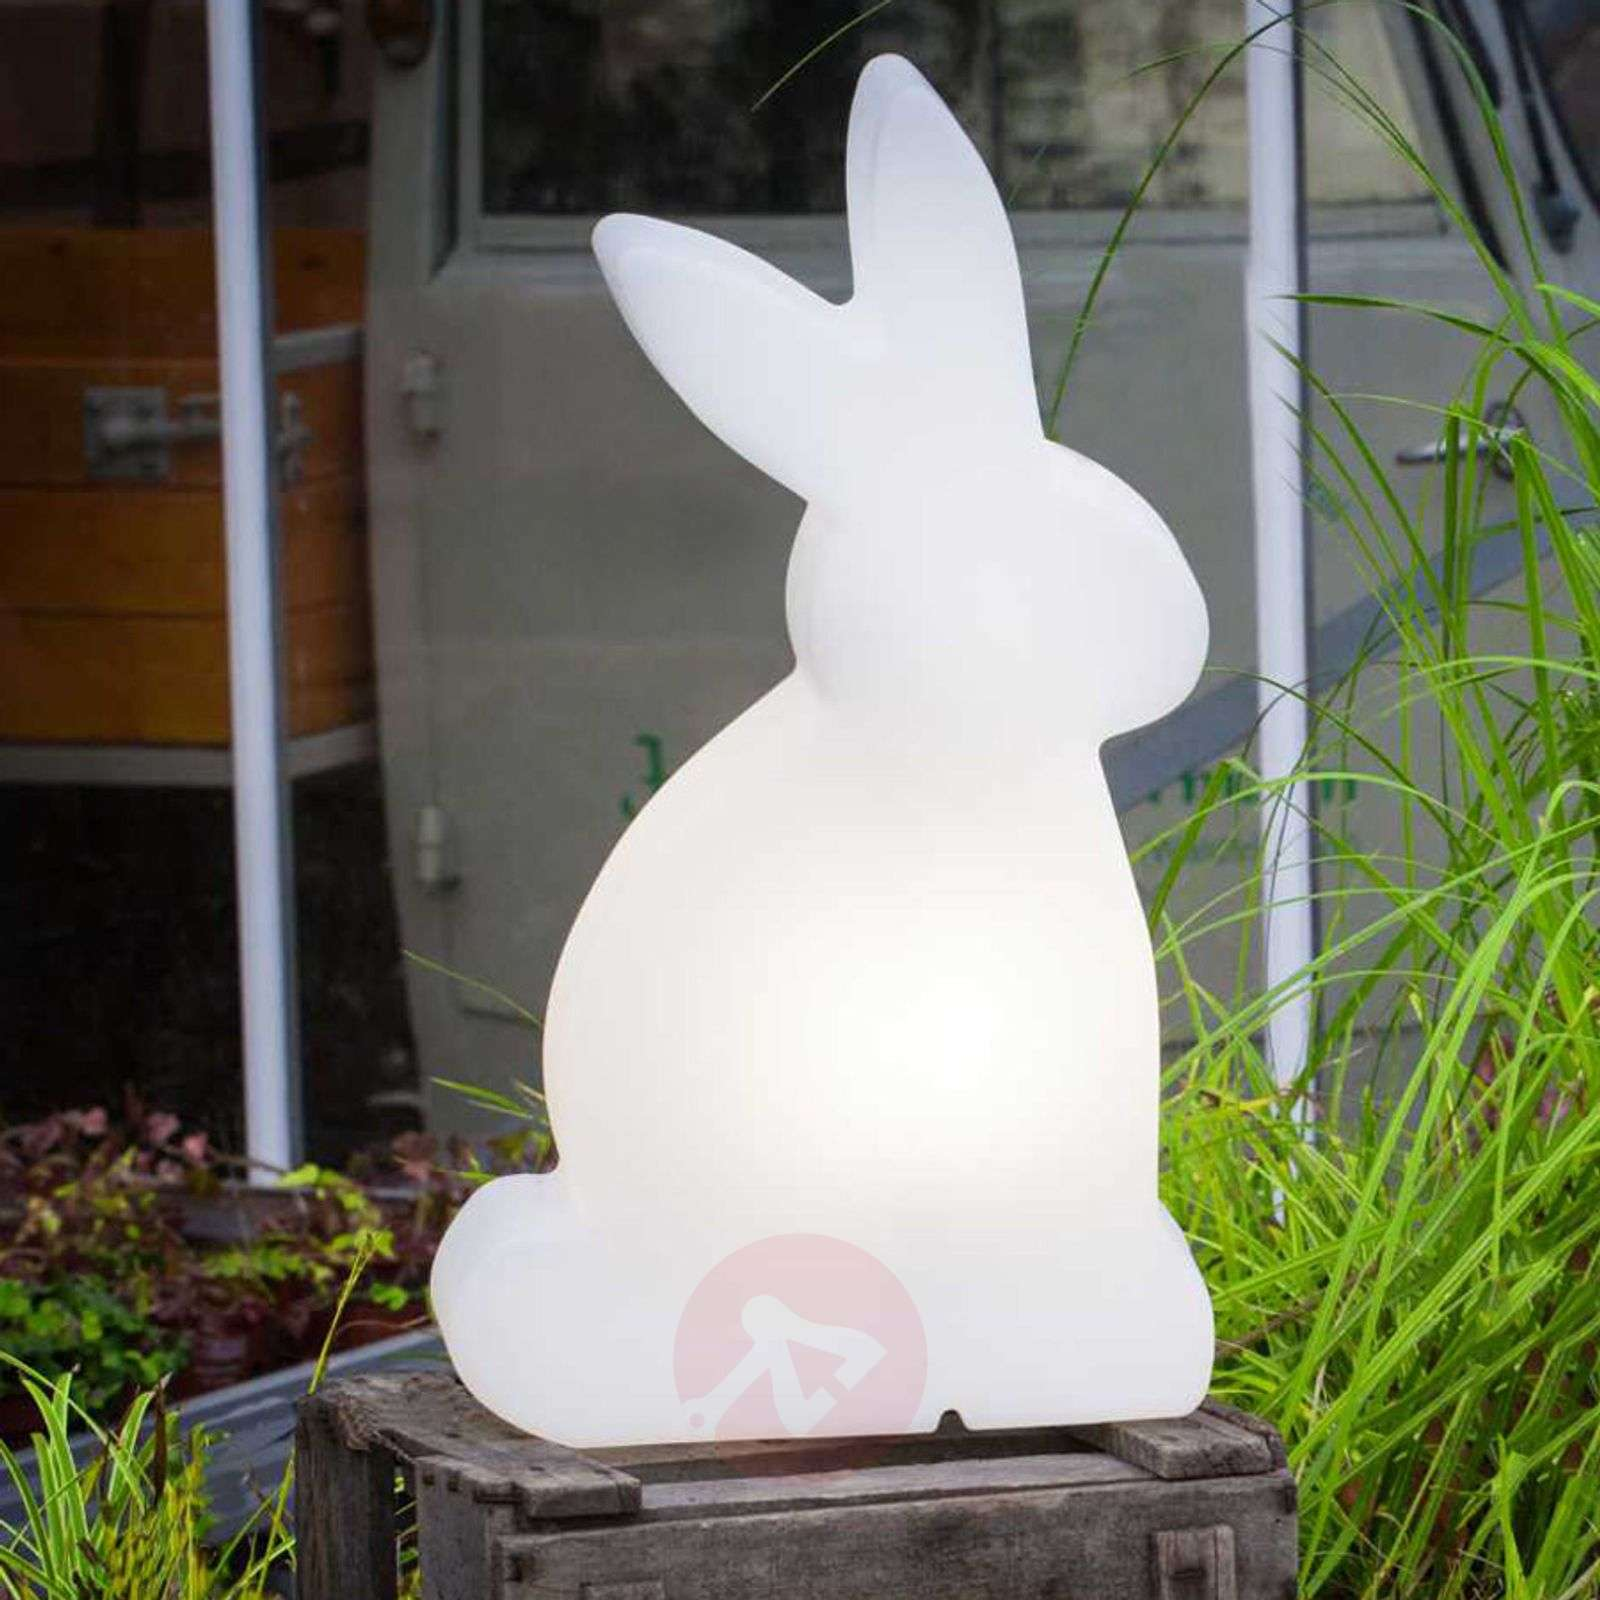 50 cm Led decoratie lamp Stralende Rabbit-1004079-02